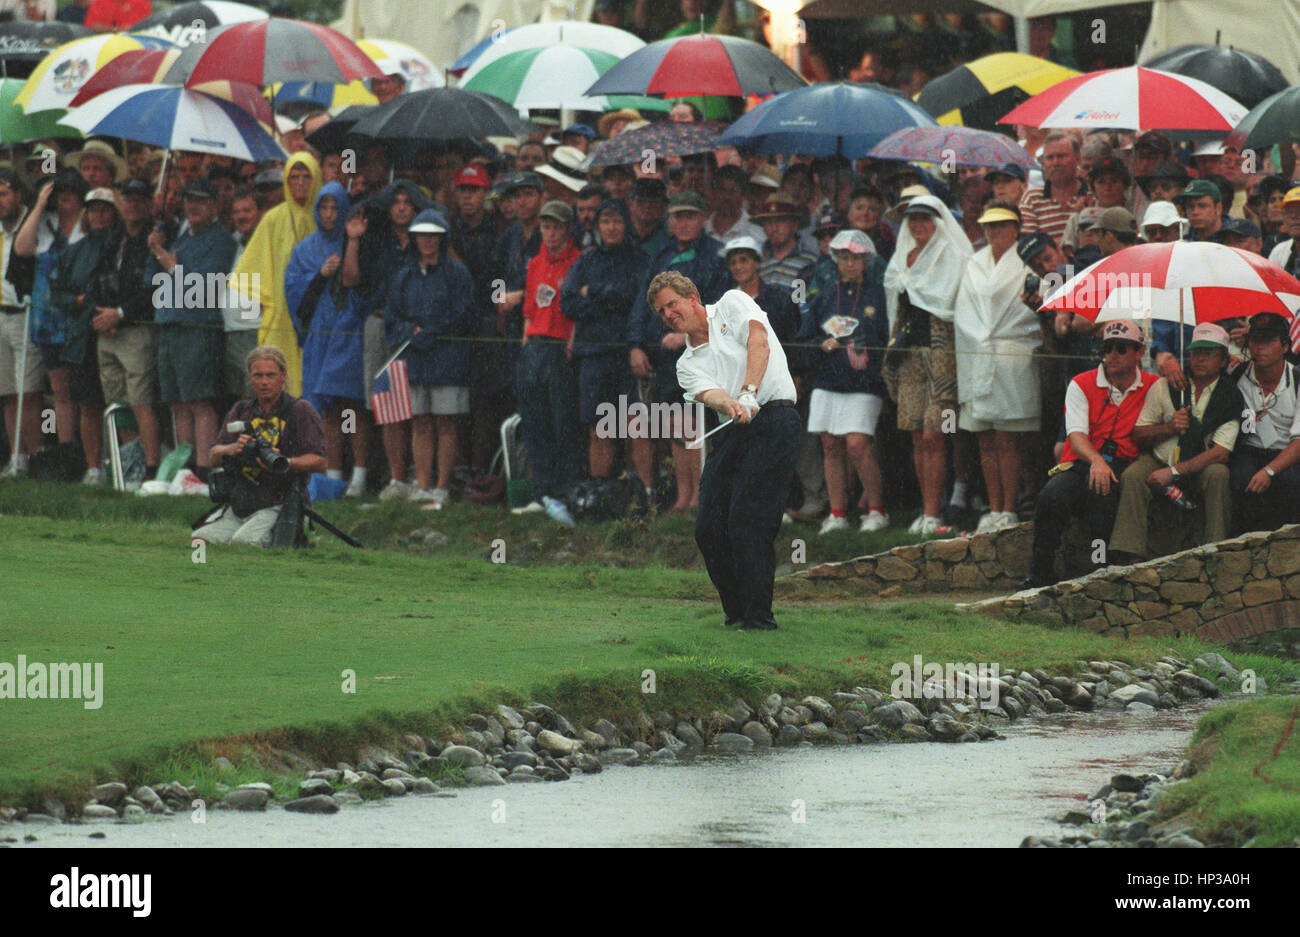 COLIN MONTGOMERIE PLAYS 17TH RYDER CUP VALDERRAMA SPAIN 29 September 1997 - Stock Image